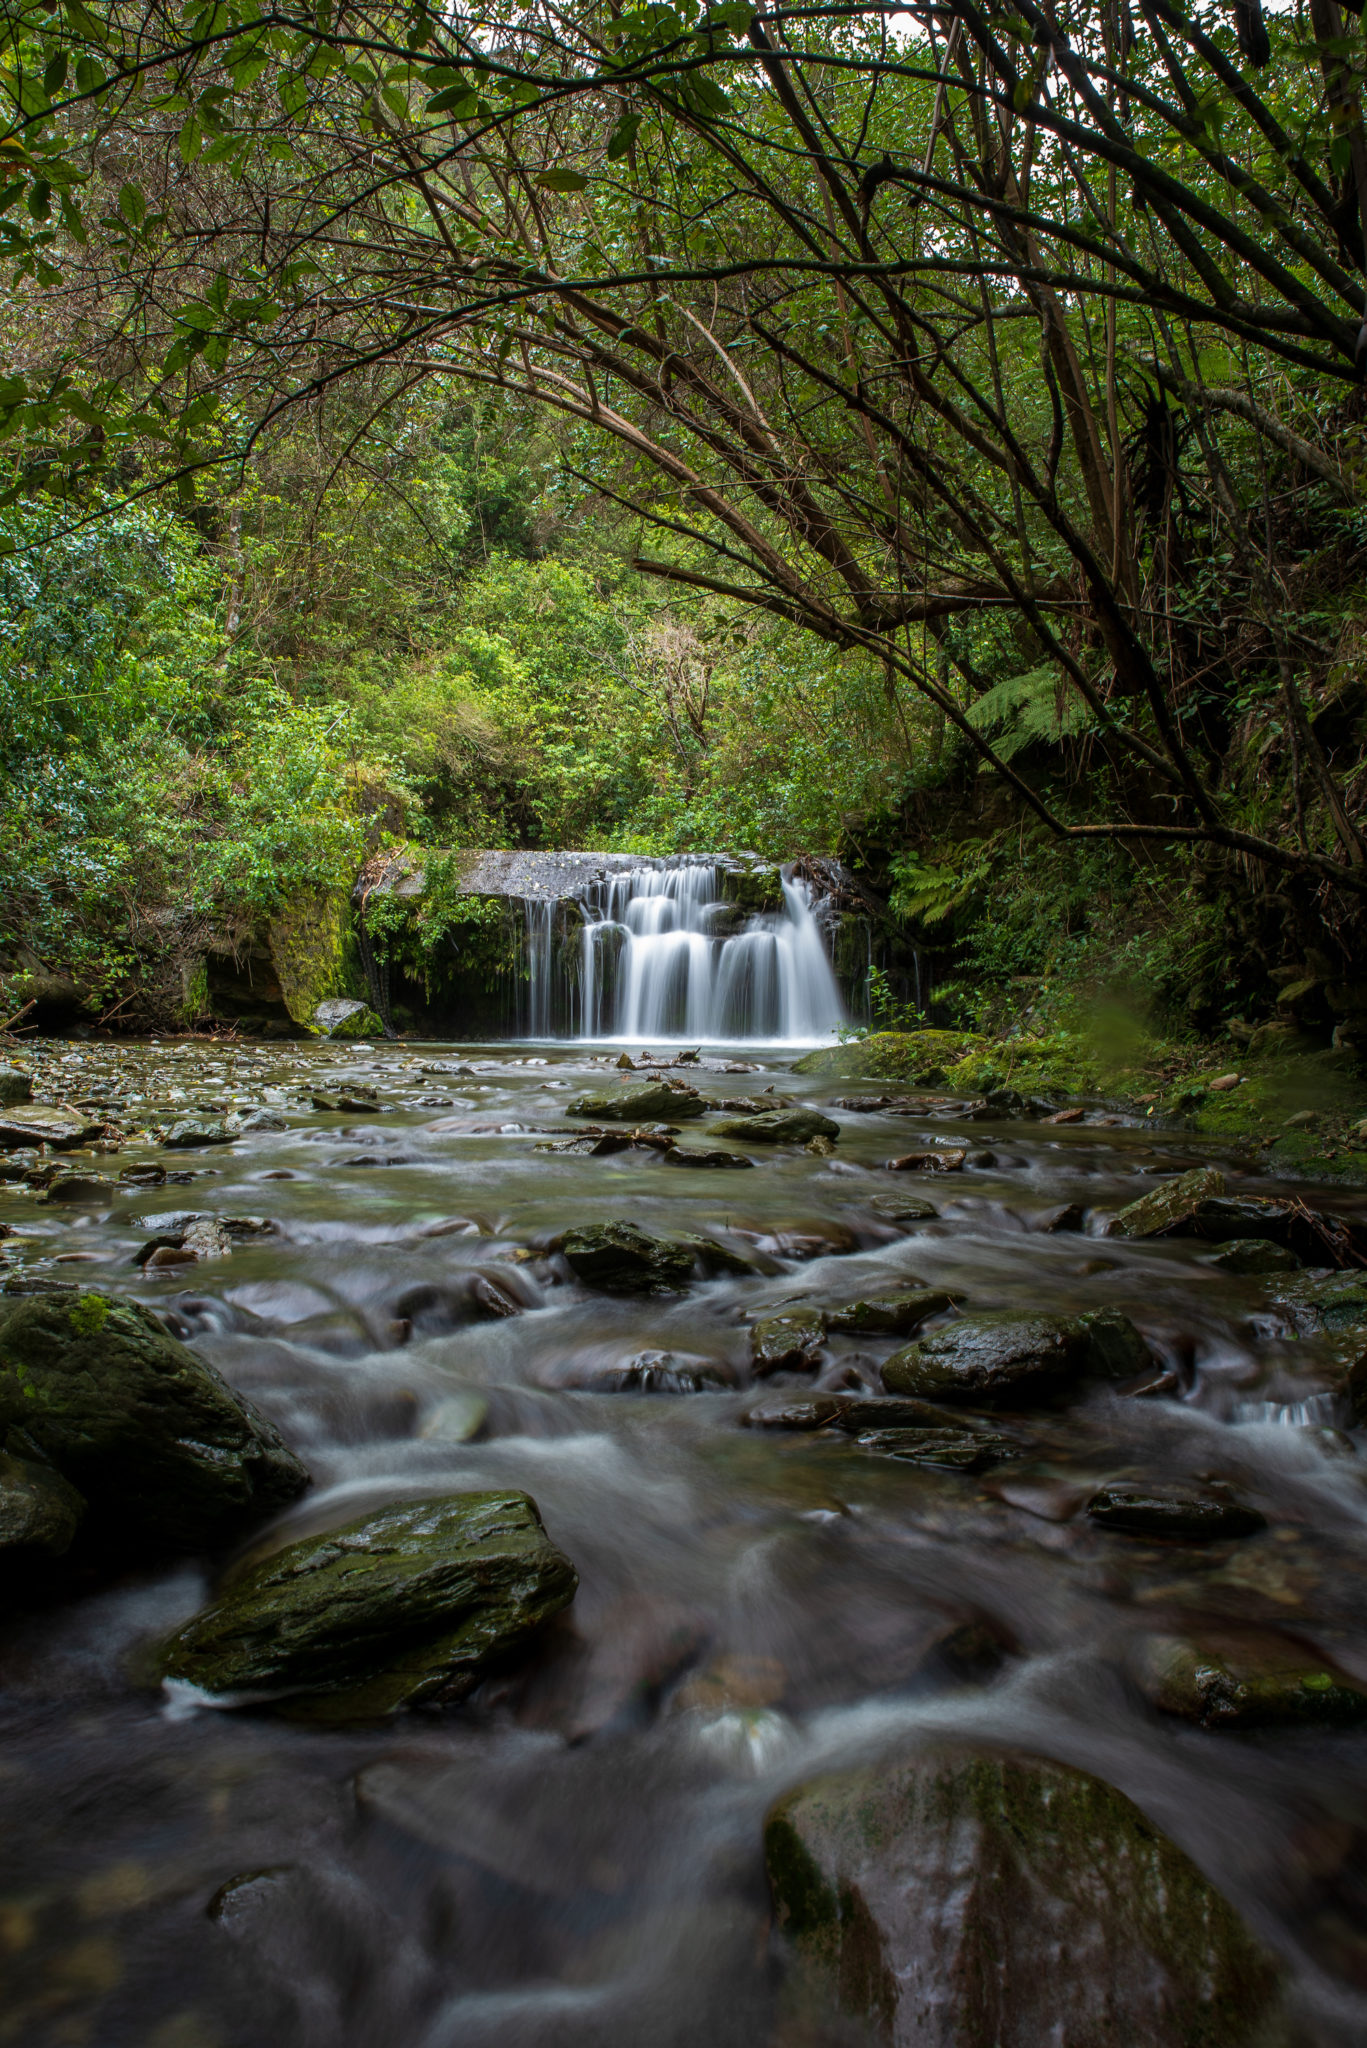 Brook Stream; Nature photography course